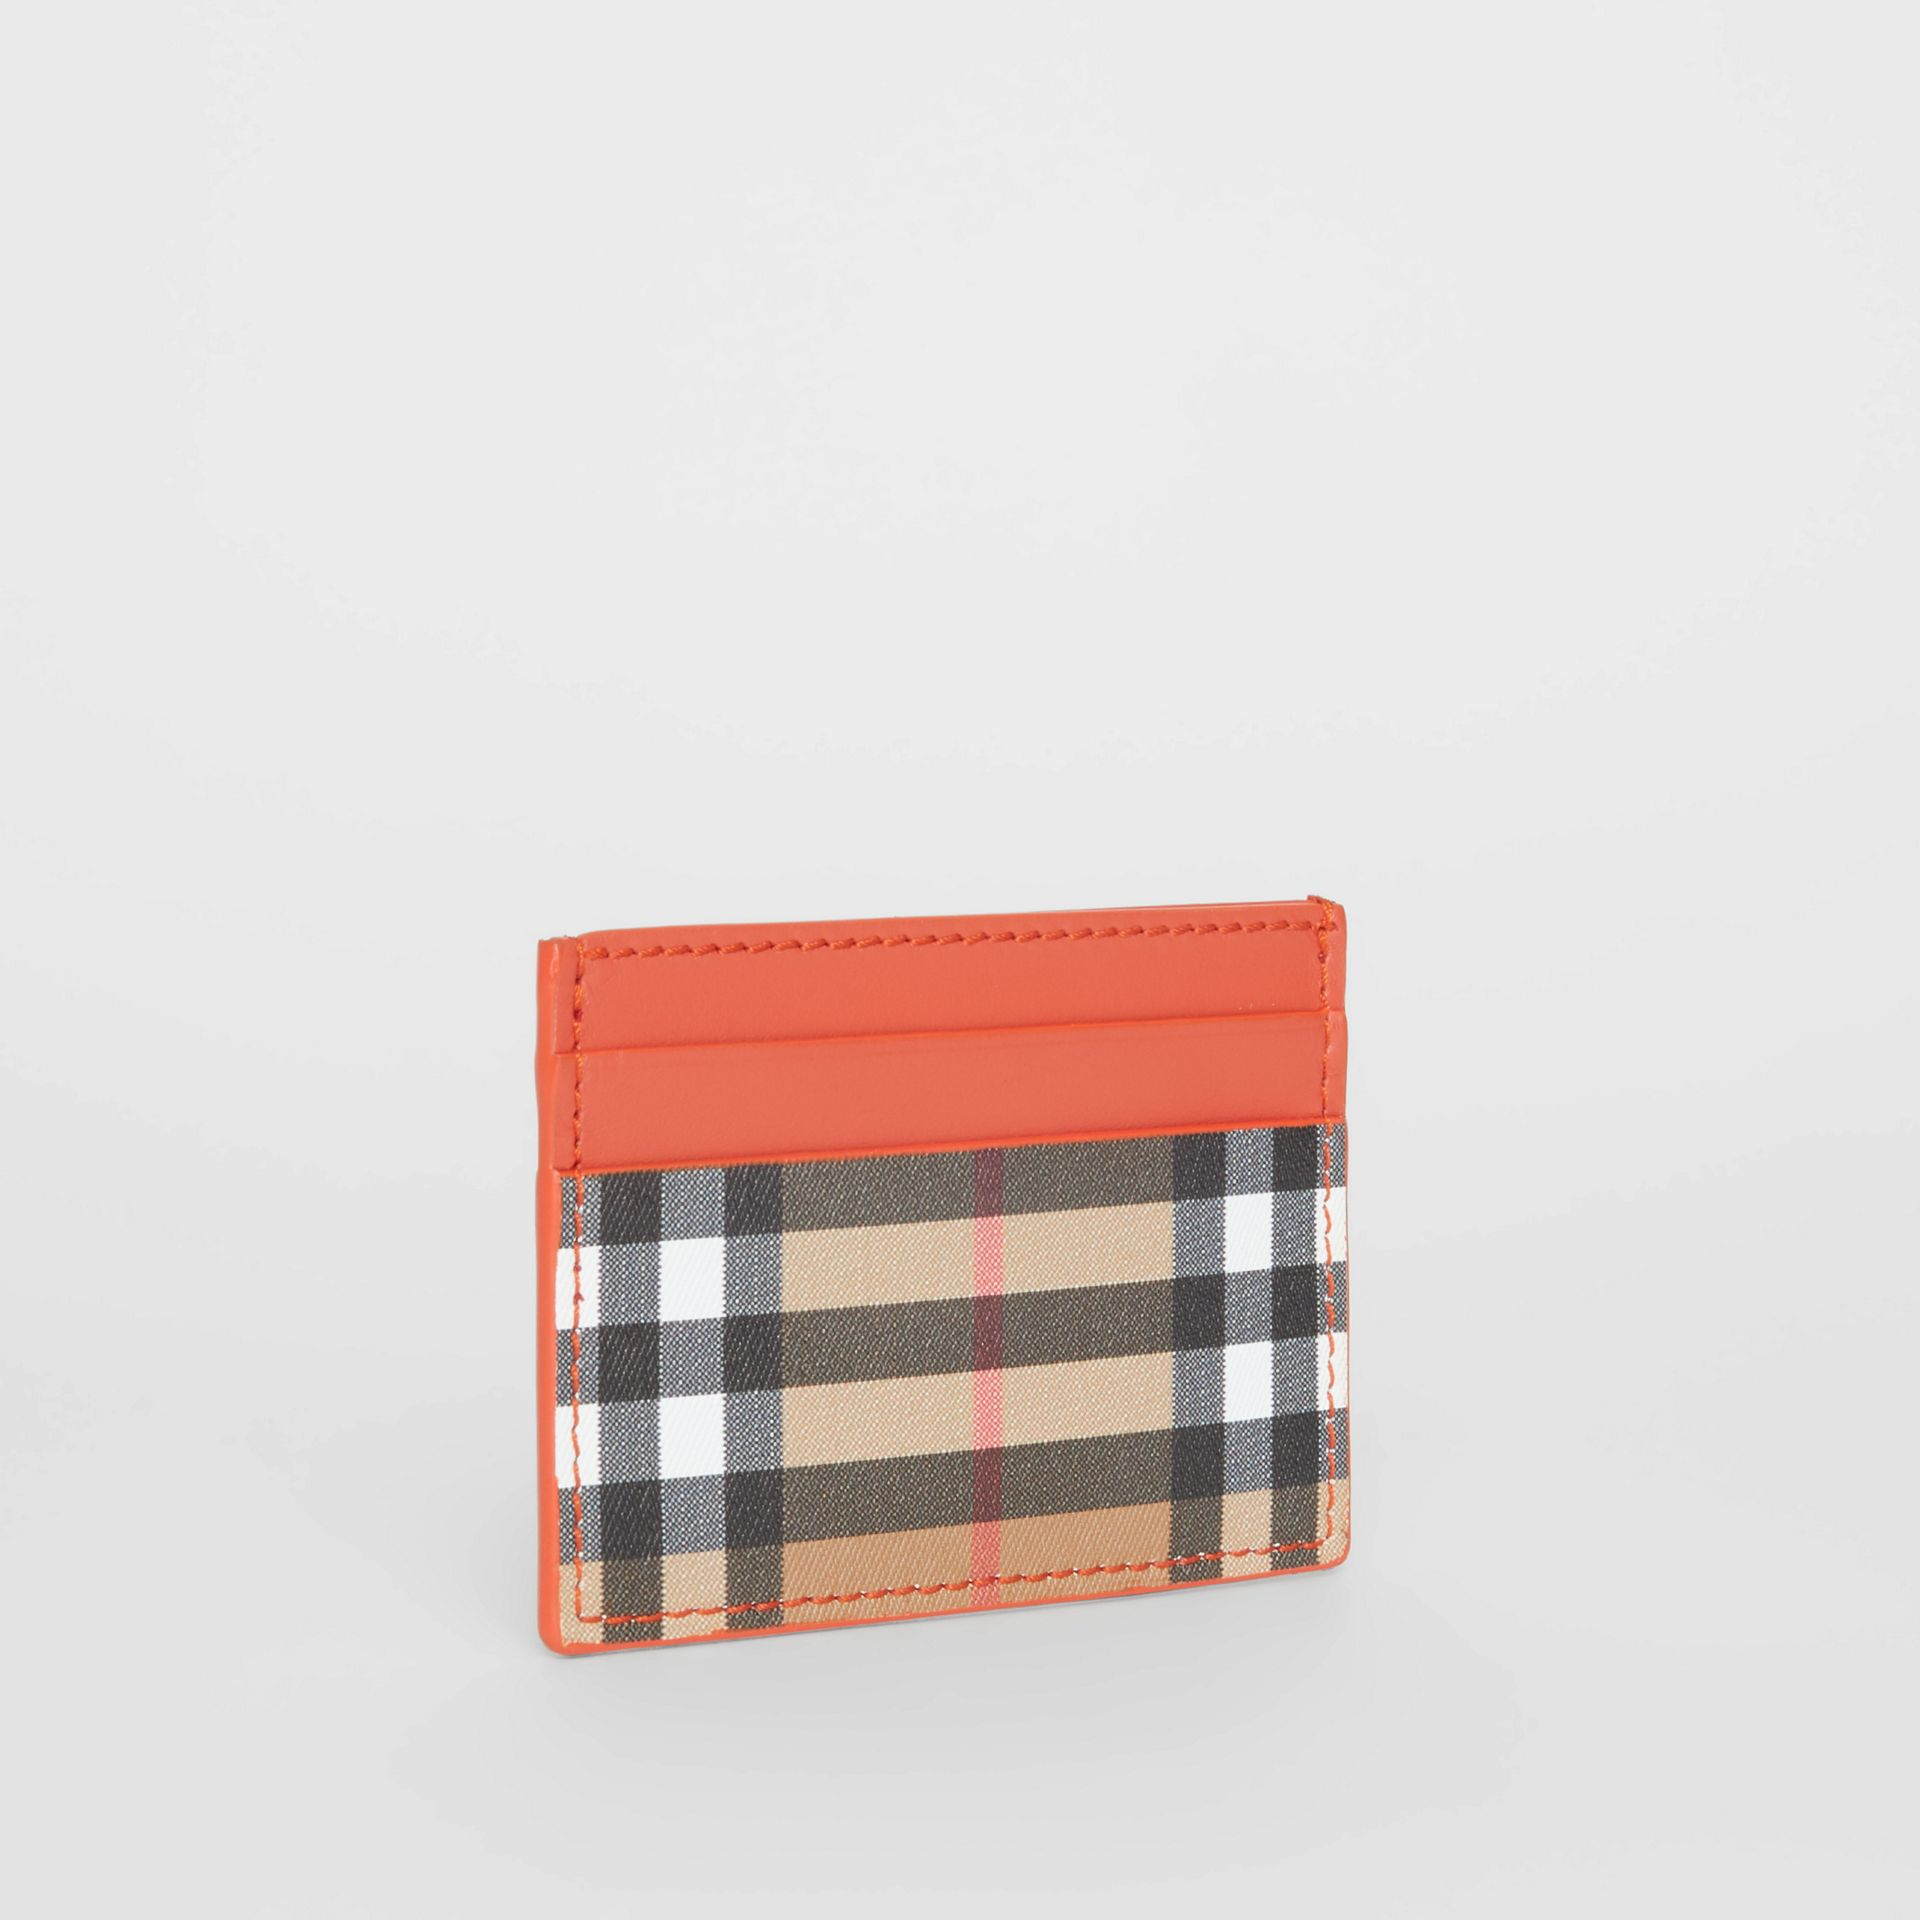 Vintage Check and Leather Card Case in Clementine - Women | Burberry Singapore - gallery image 3